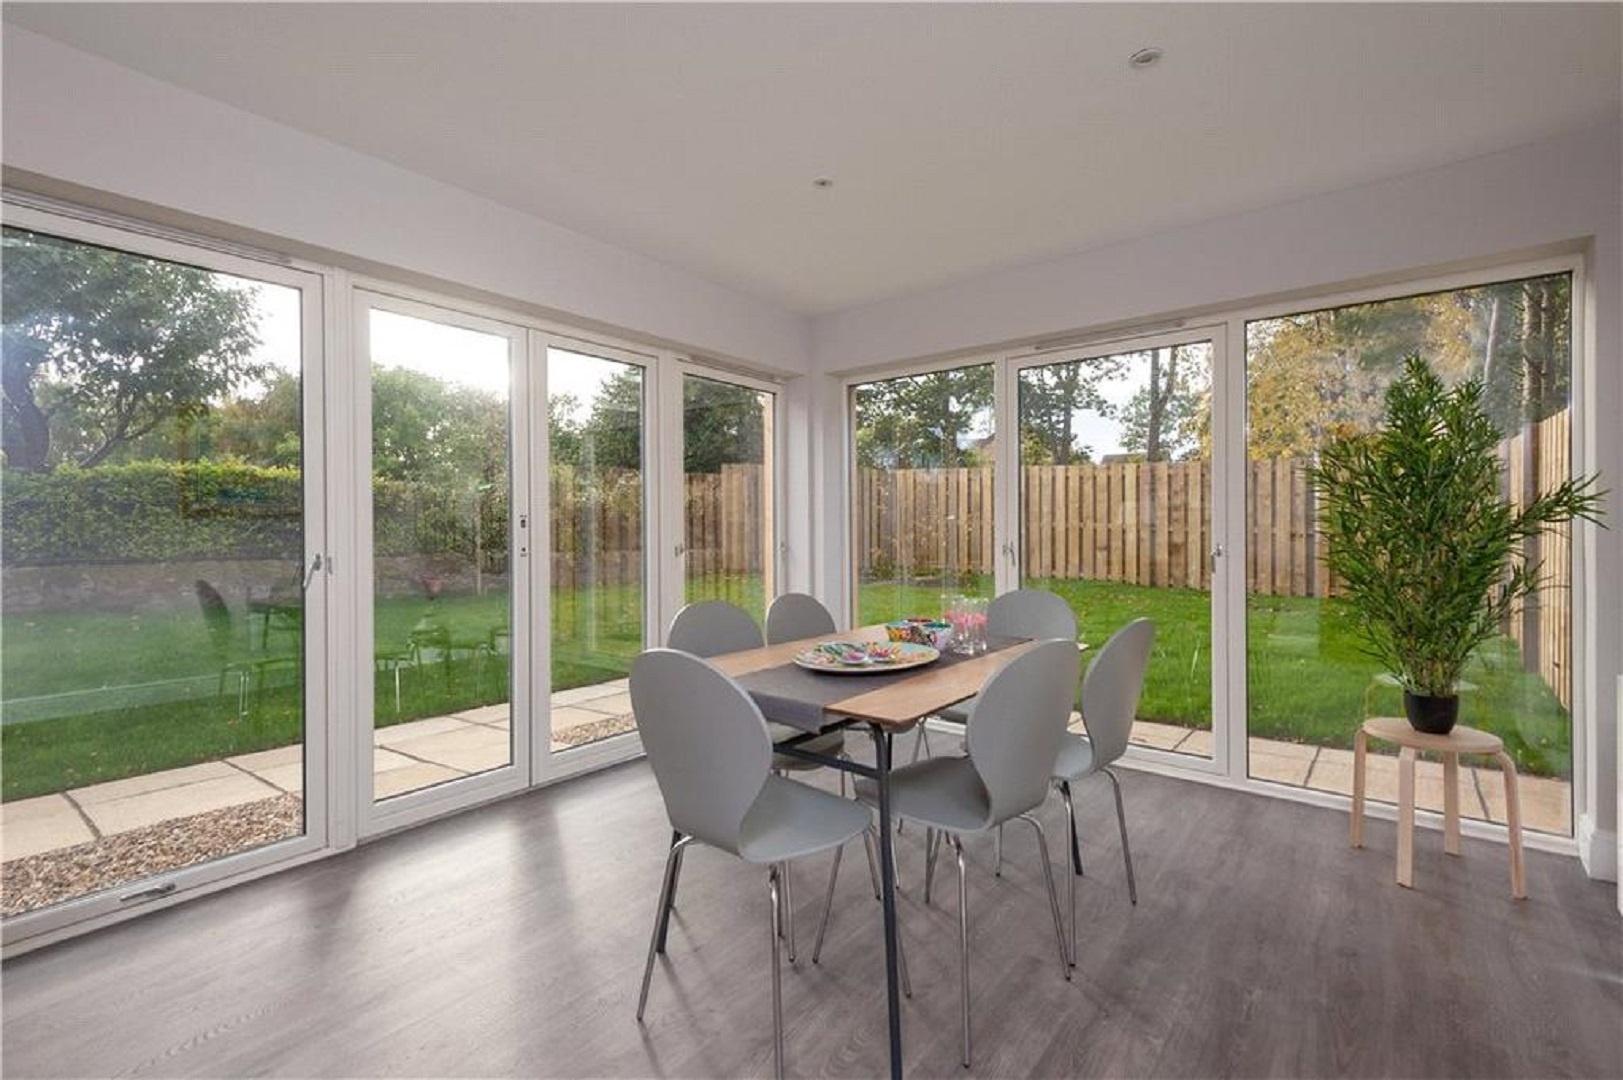 Dining Room of New Build Houses